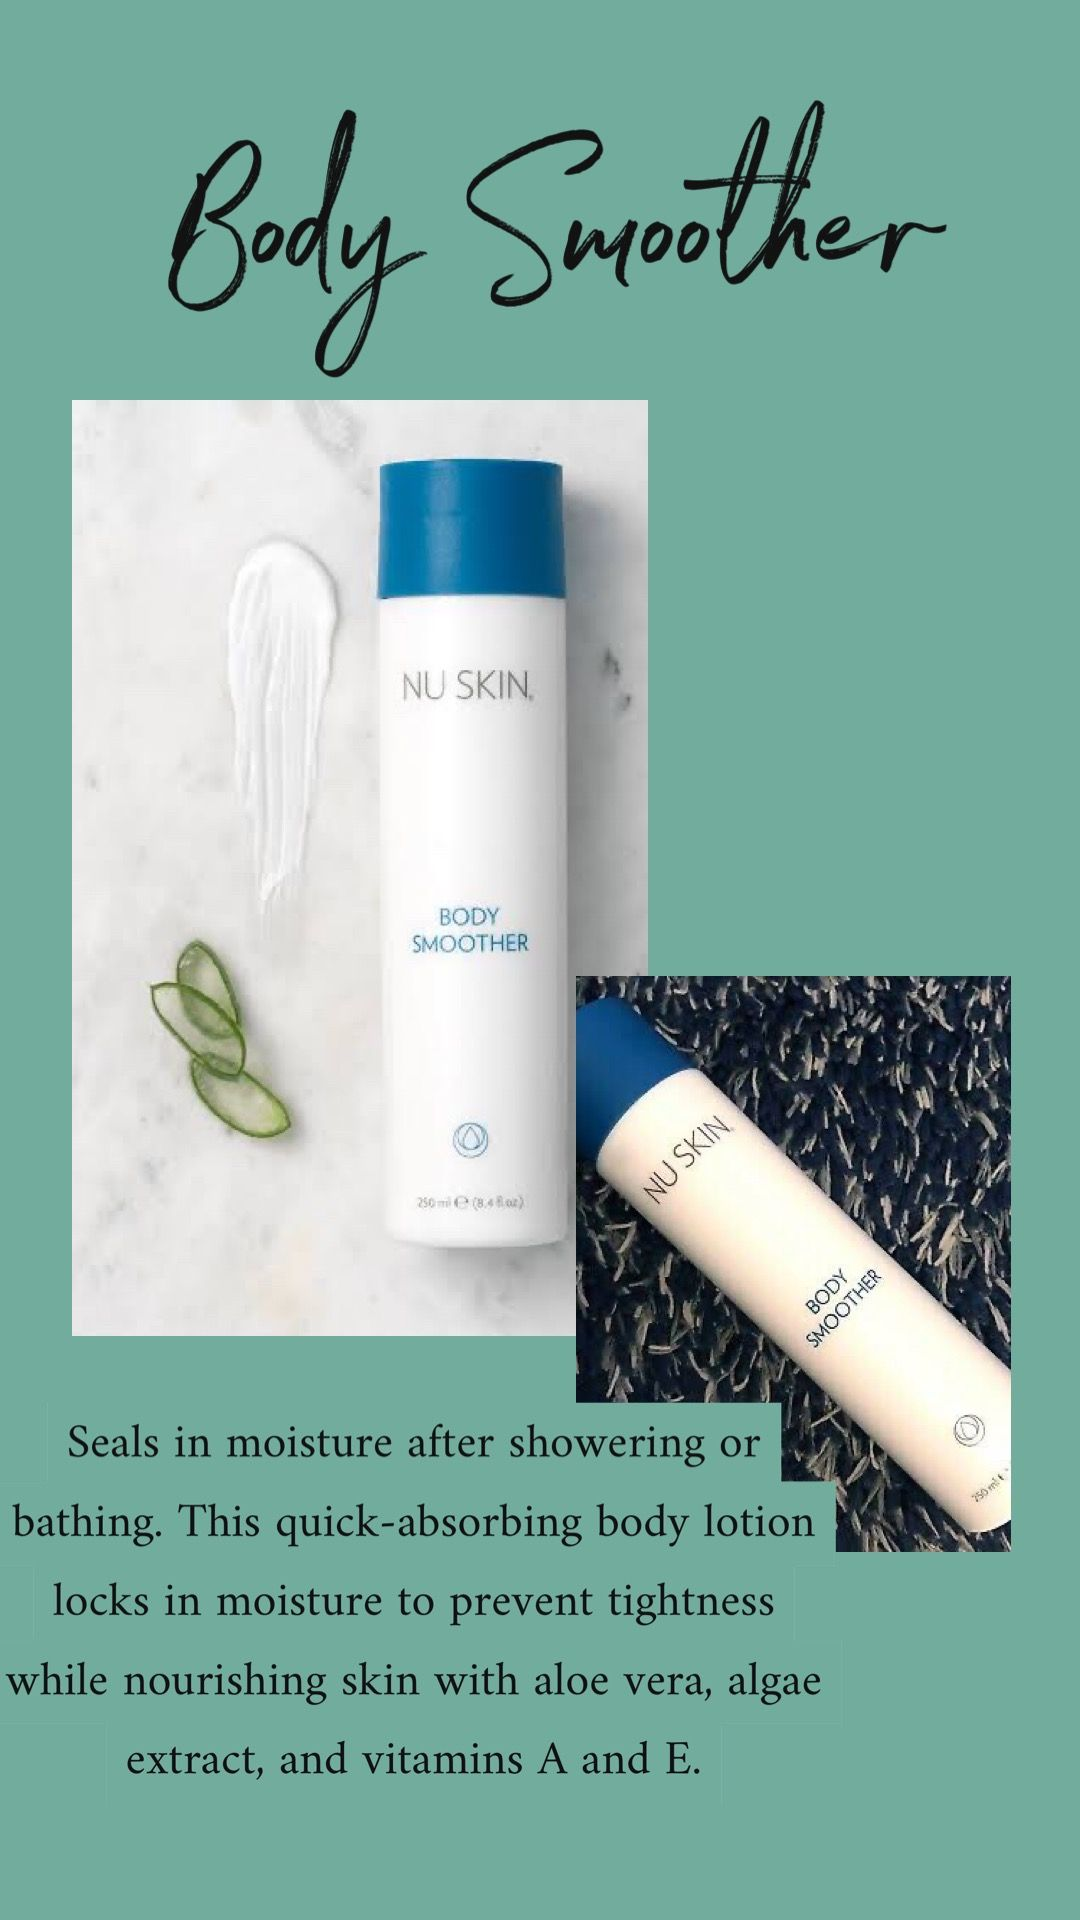 Body Smoother Nuskin Skincare Beauty Secrets Beauty Skin Quotes